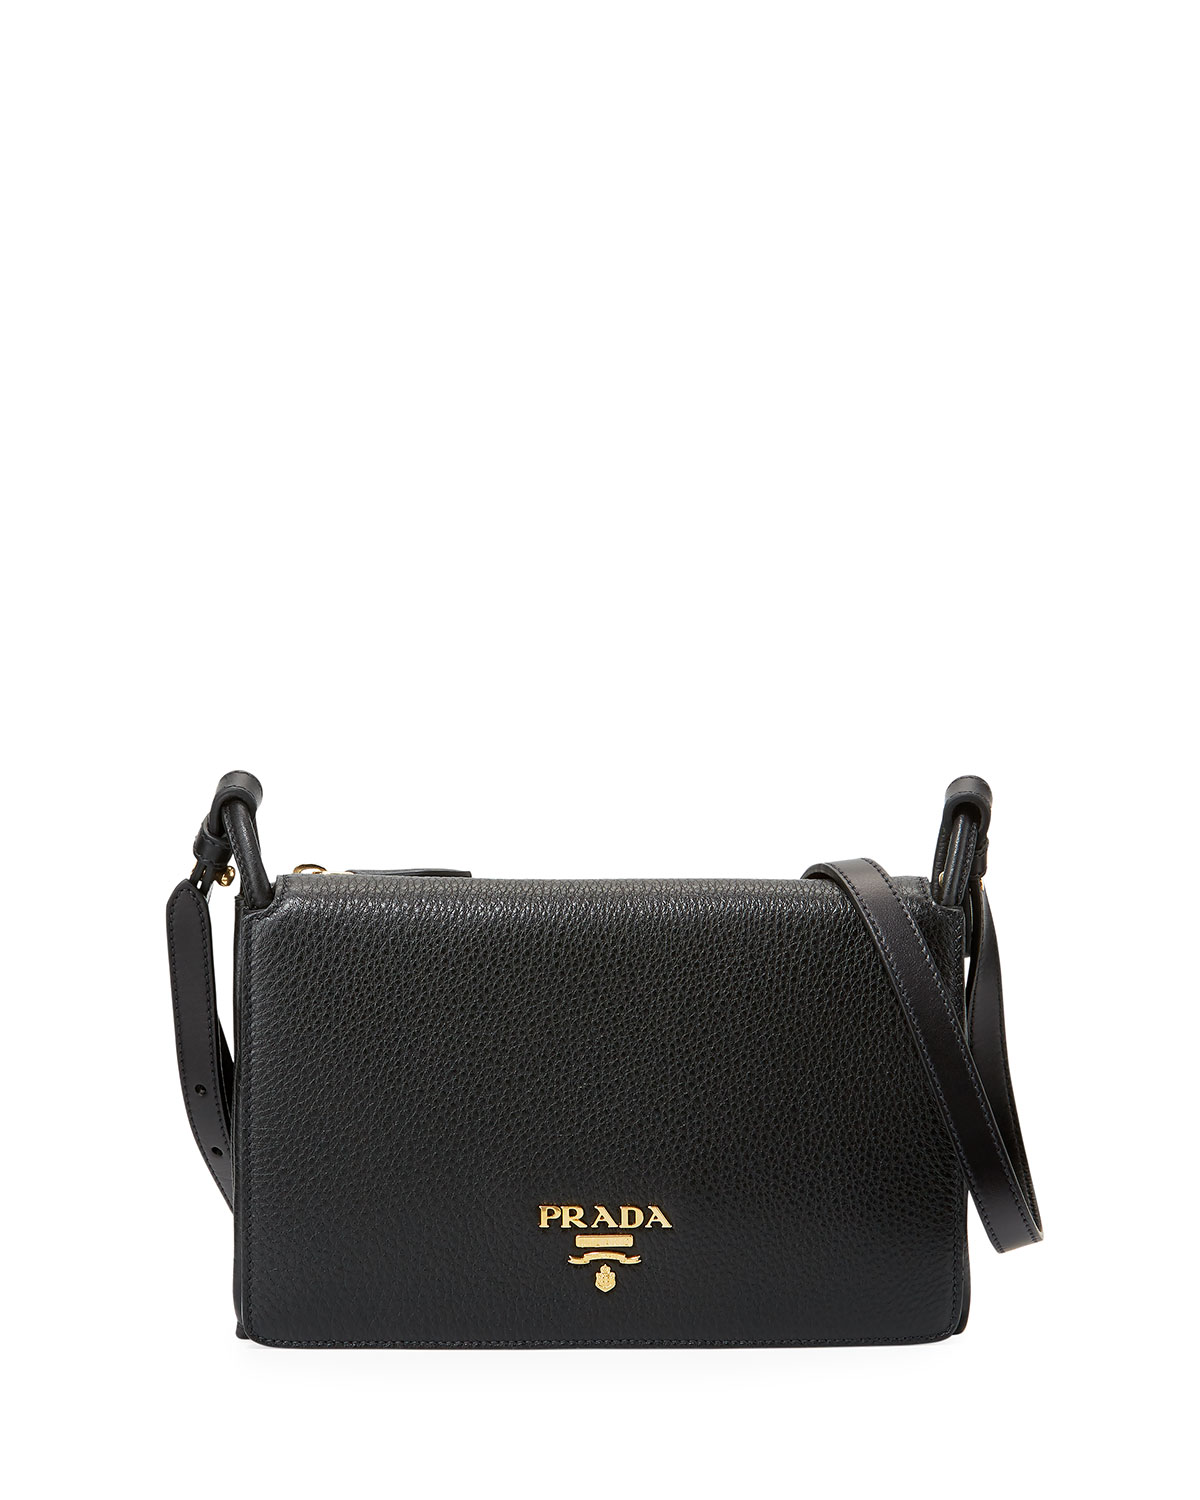 84669b8c3410 Prada Handbags and Totes at MuchosBesitos